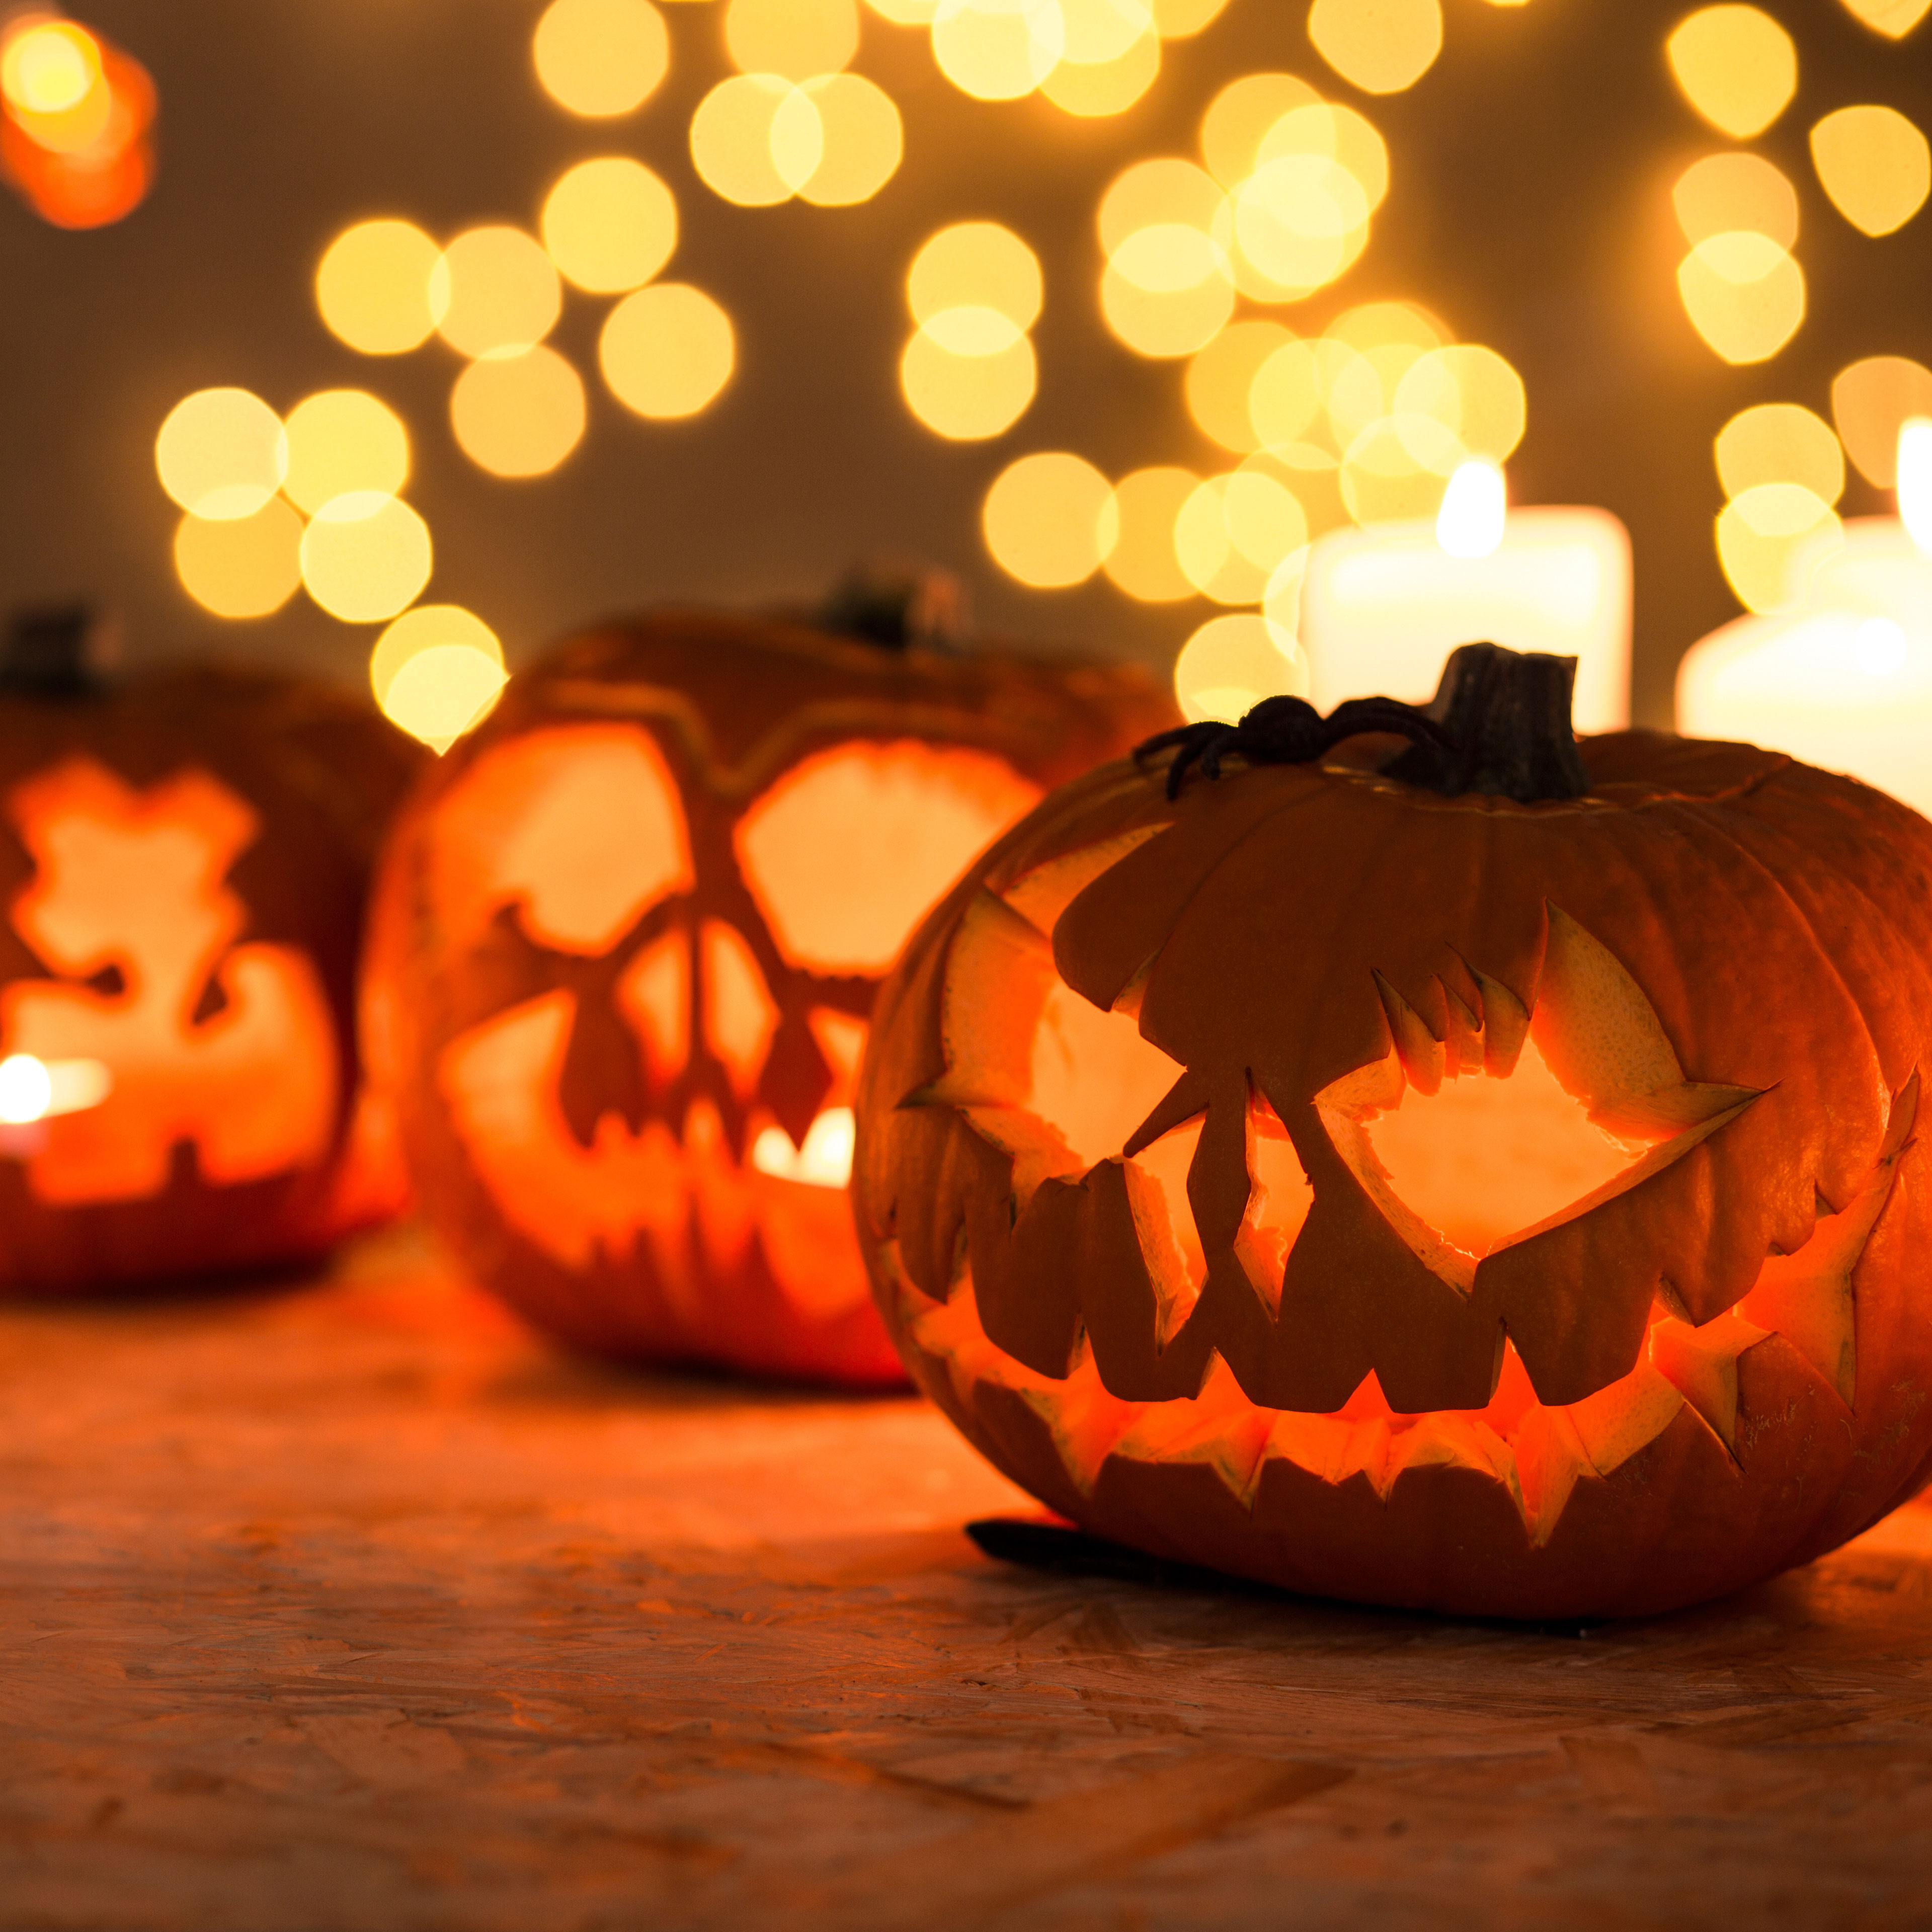 HALLOWEEN EVENTS NEAR OUR BUDGET HOTEL IN NORTHAMPTON